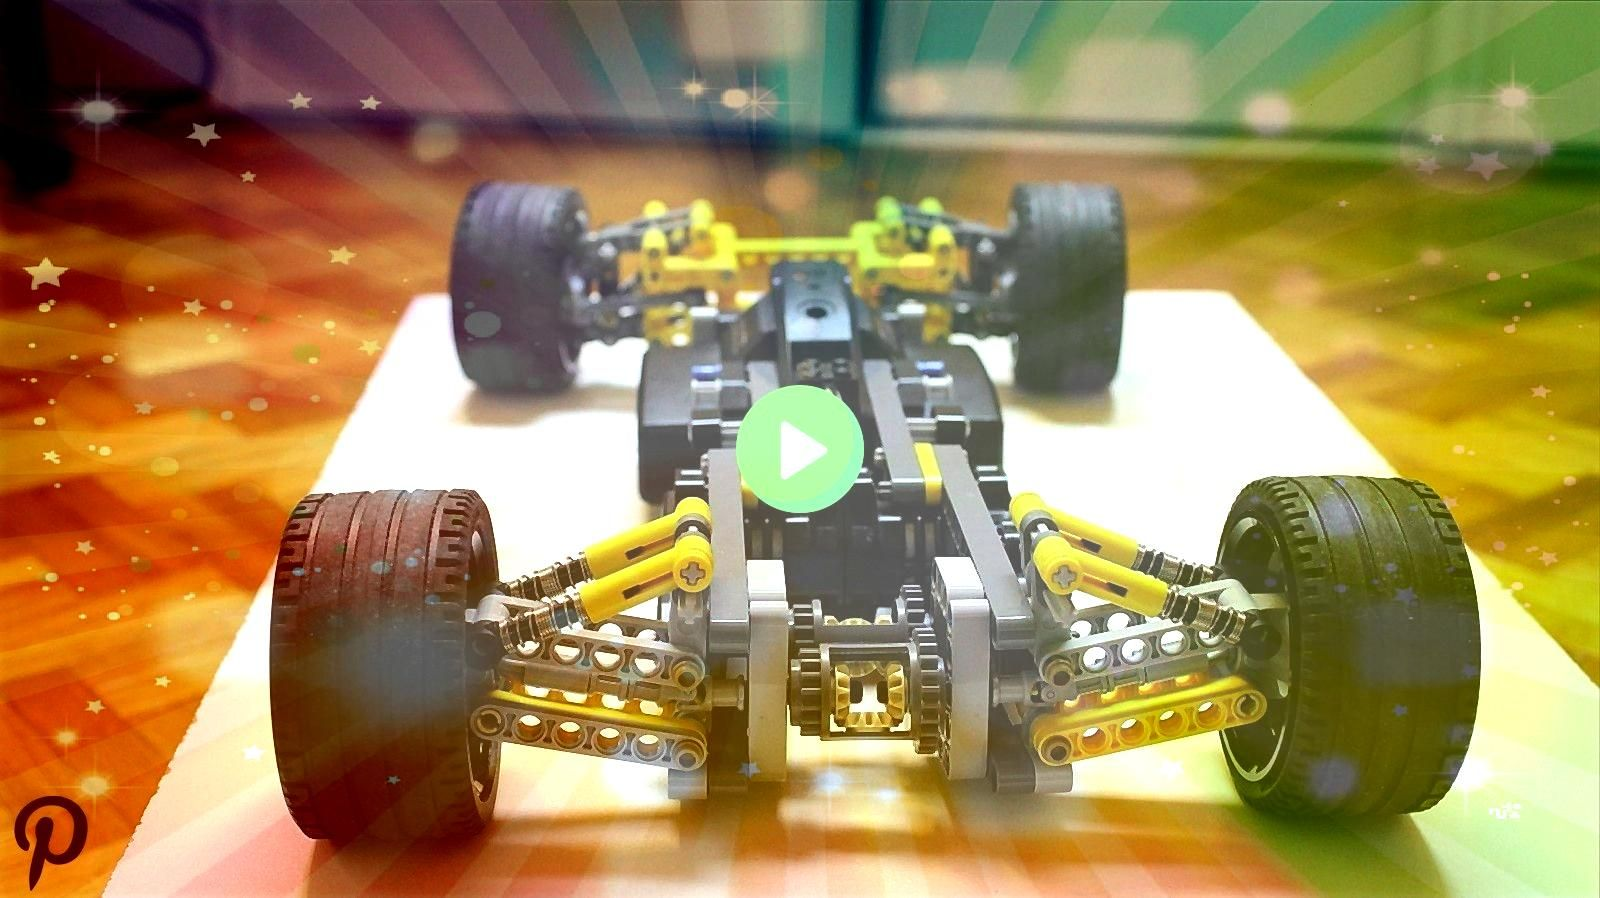 Technic chassis RC motor Lego Technic chassis RC motorLego Technic chassis RC motor 163 best great kids bookshelf diy ideas for your baby home page 41  Lego Technic chass...